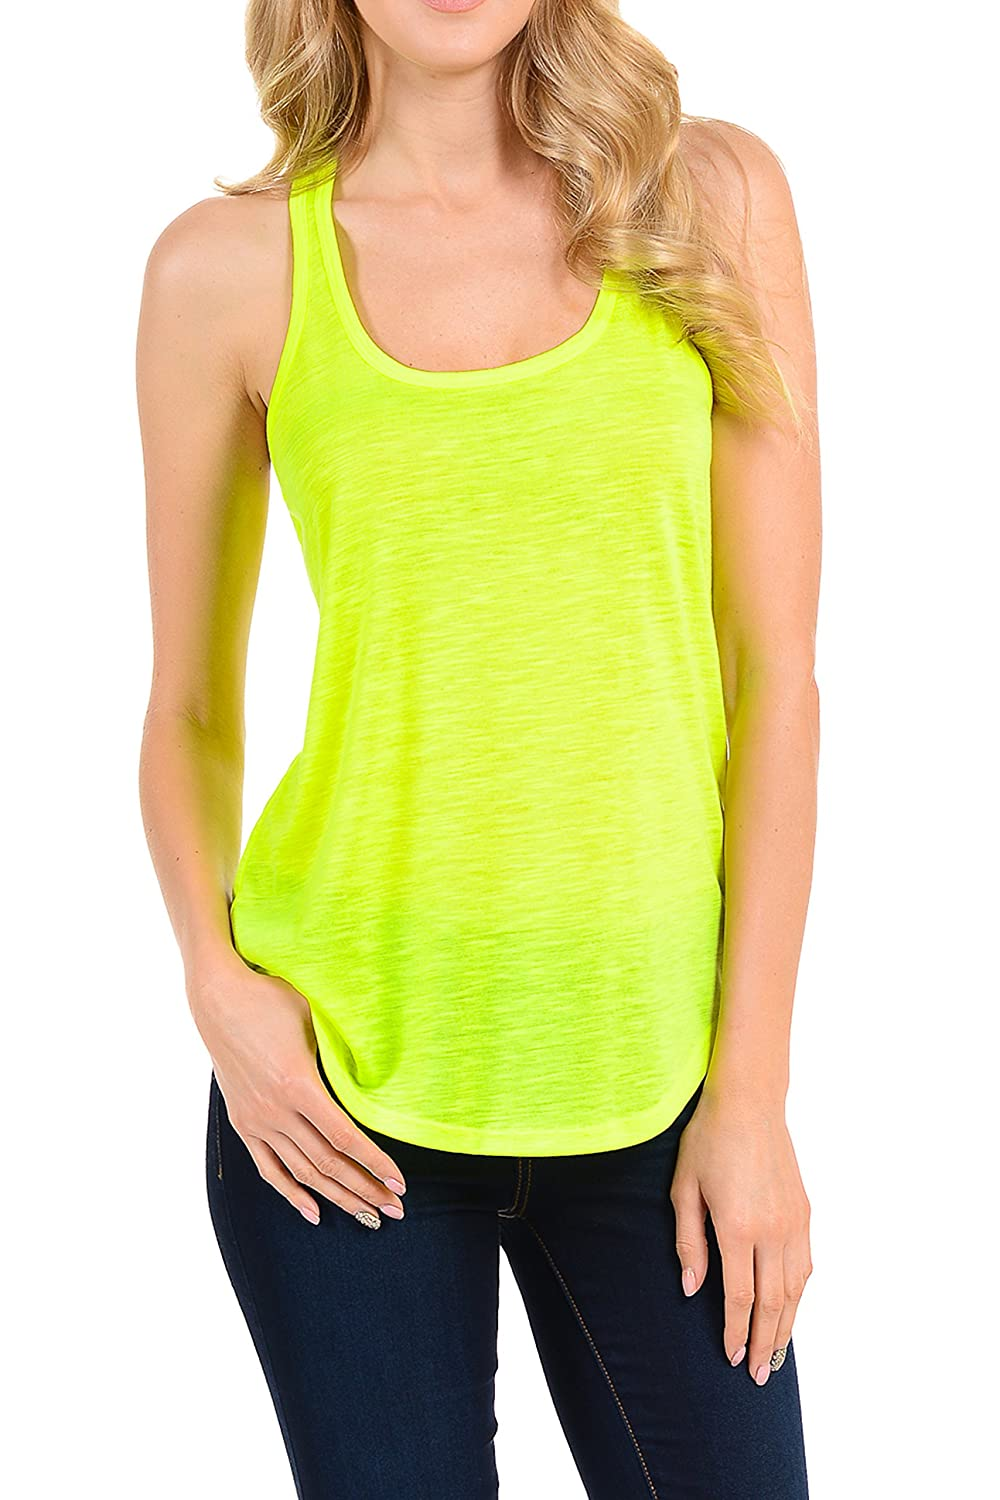 EttelLut Workout Neon Racerback Tank Tops Yoga Sports Activewear Cute Women MC9730